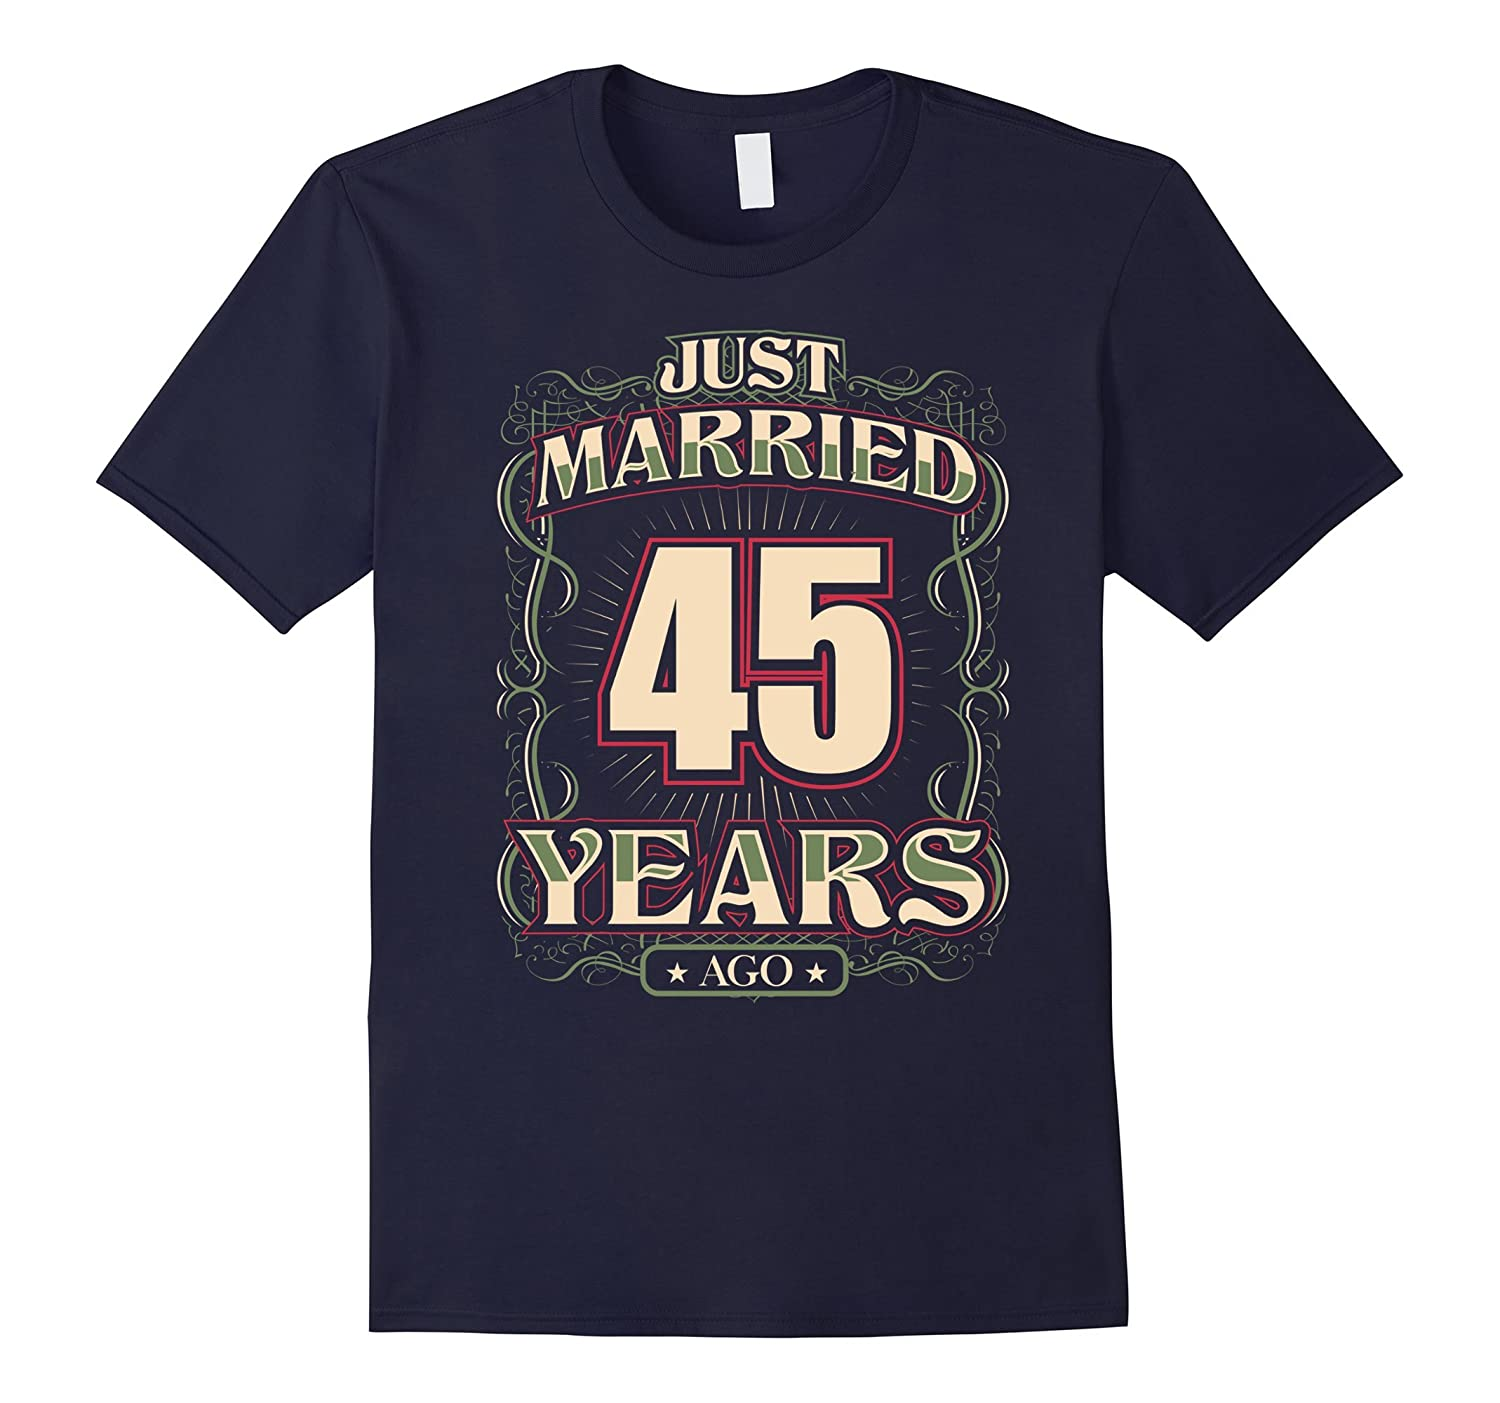 45th Wedding Anniversary Shirt Just Married 45 Years Ago-Art